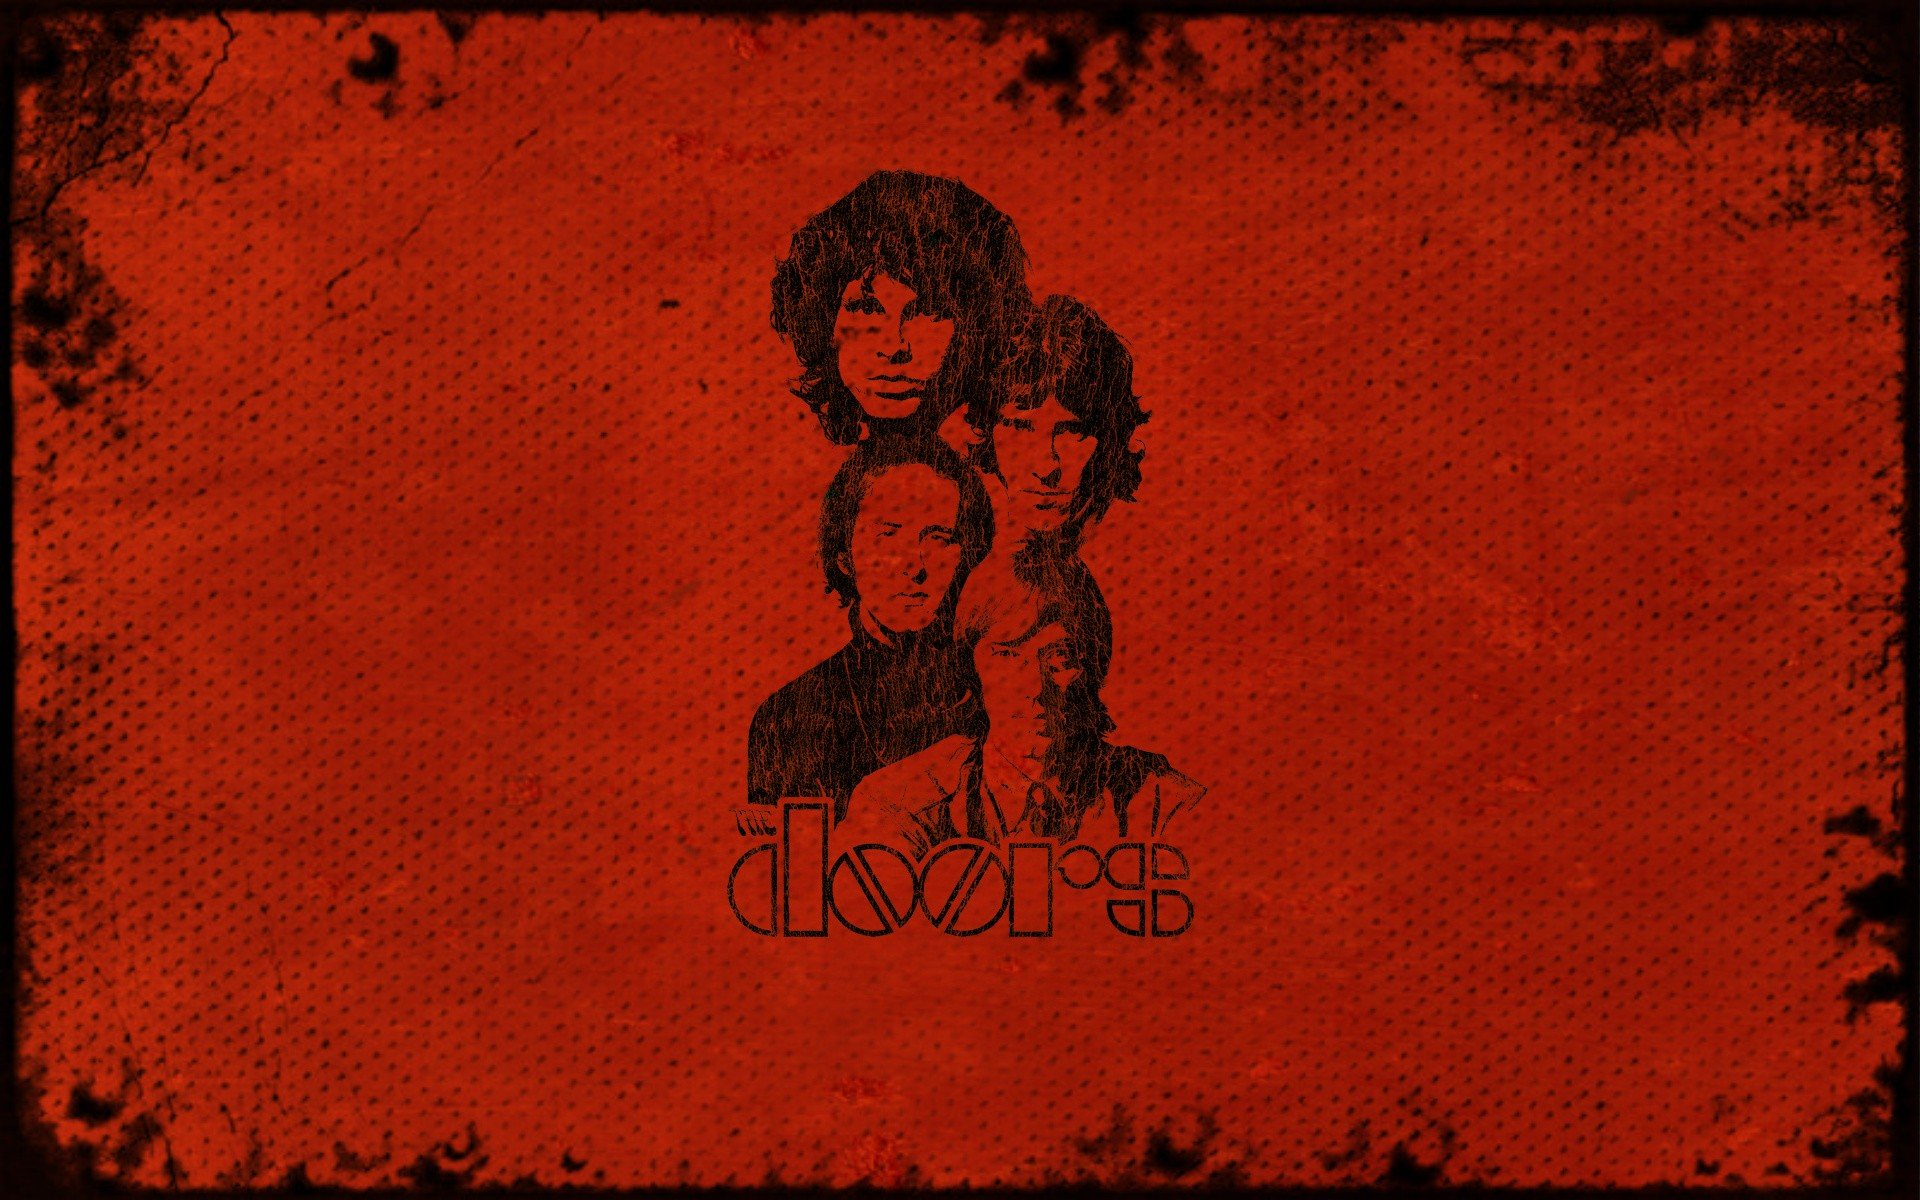 The Doors Wallpapers